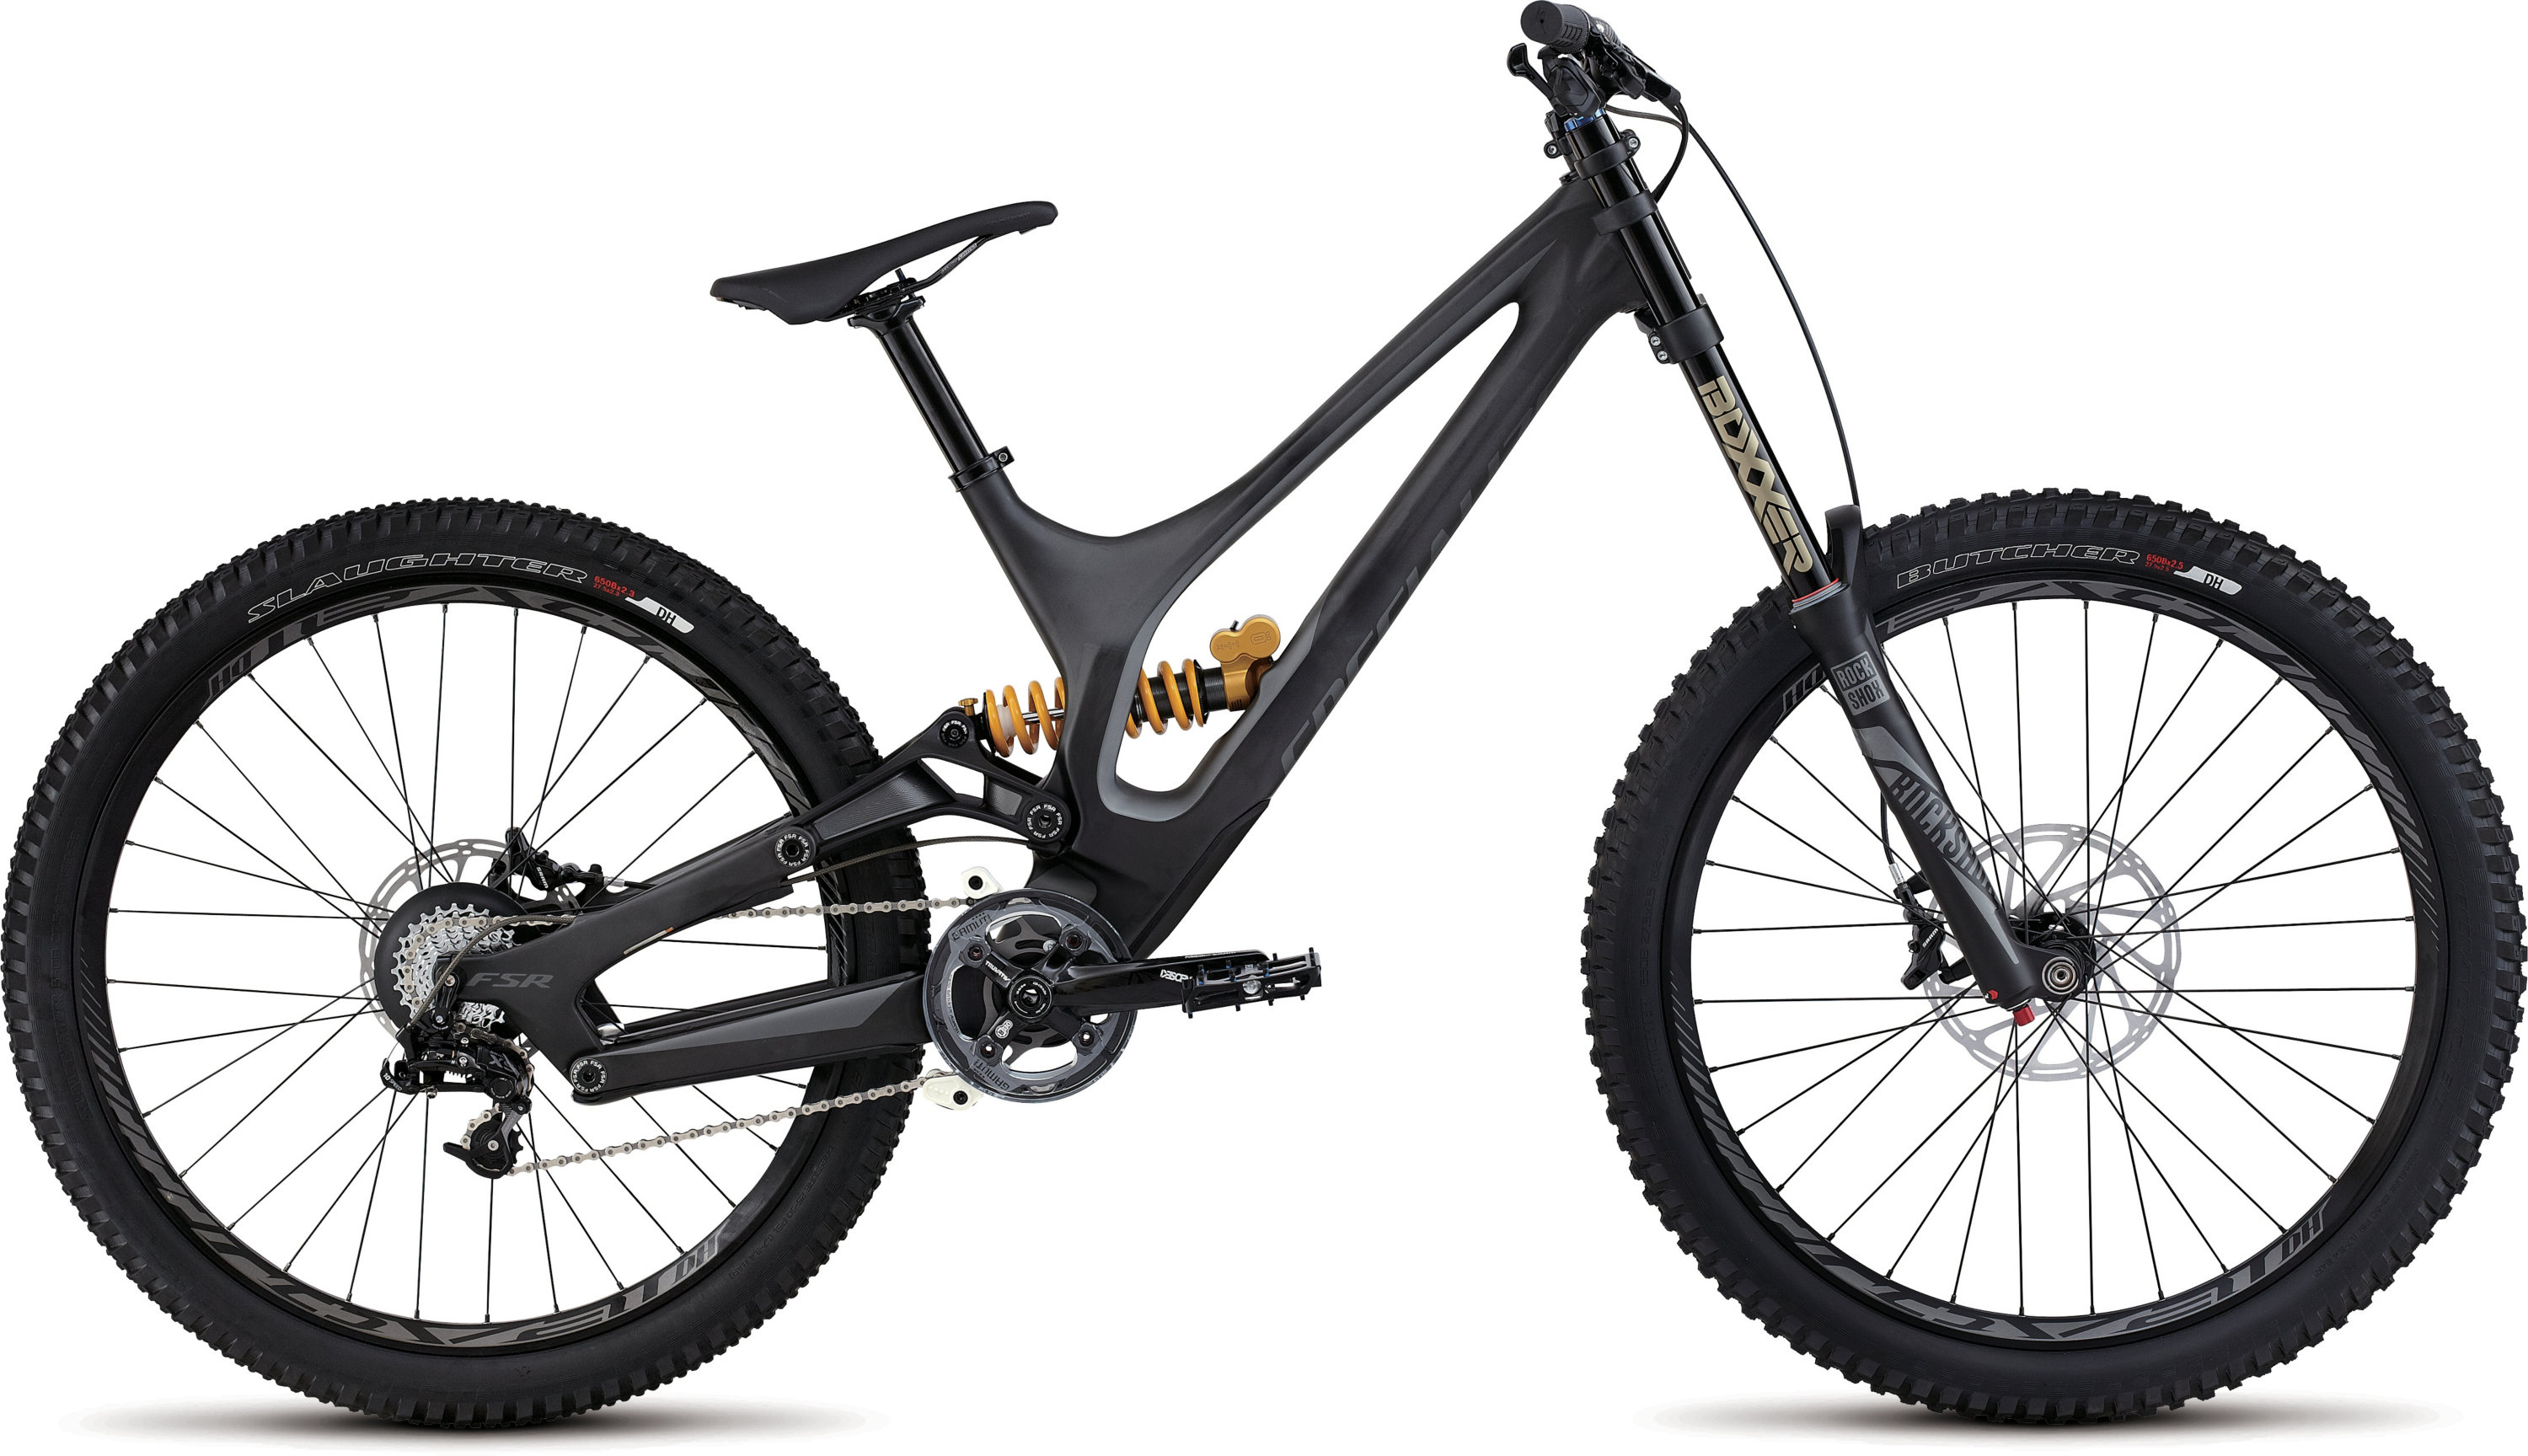 SPECIALIZED DEMO 8 FSR I CARBON 650B CARB/CHAR SH - Bikedreams & Dustbikes